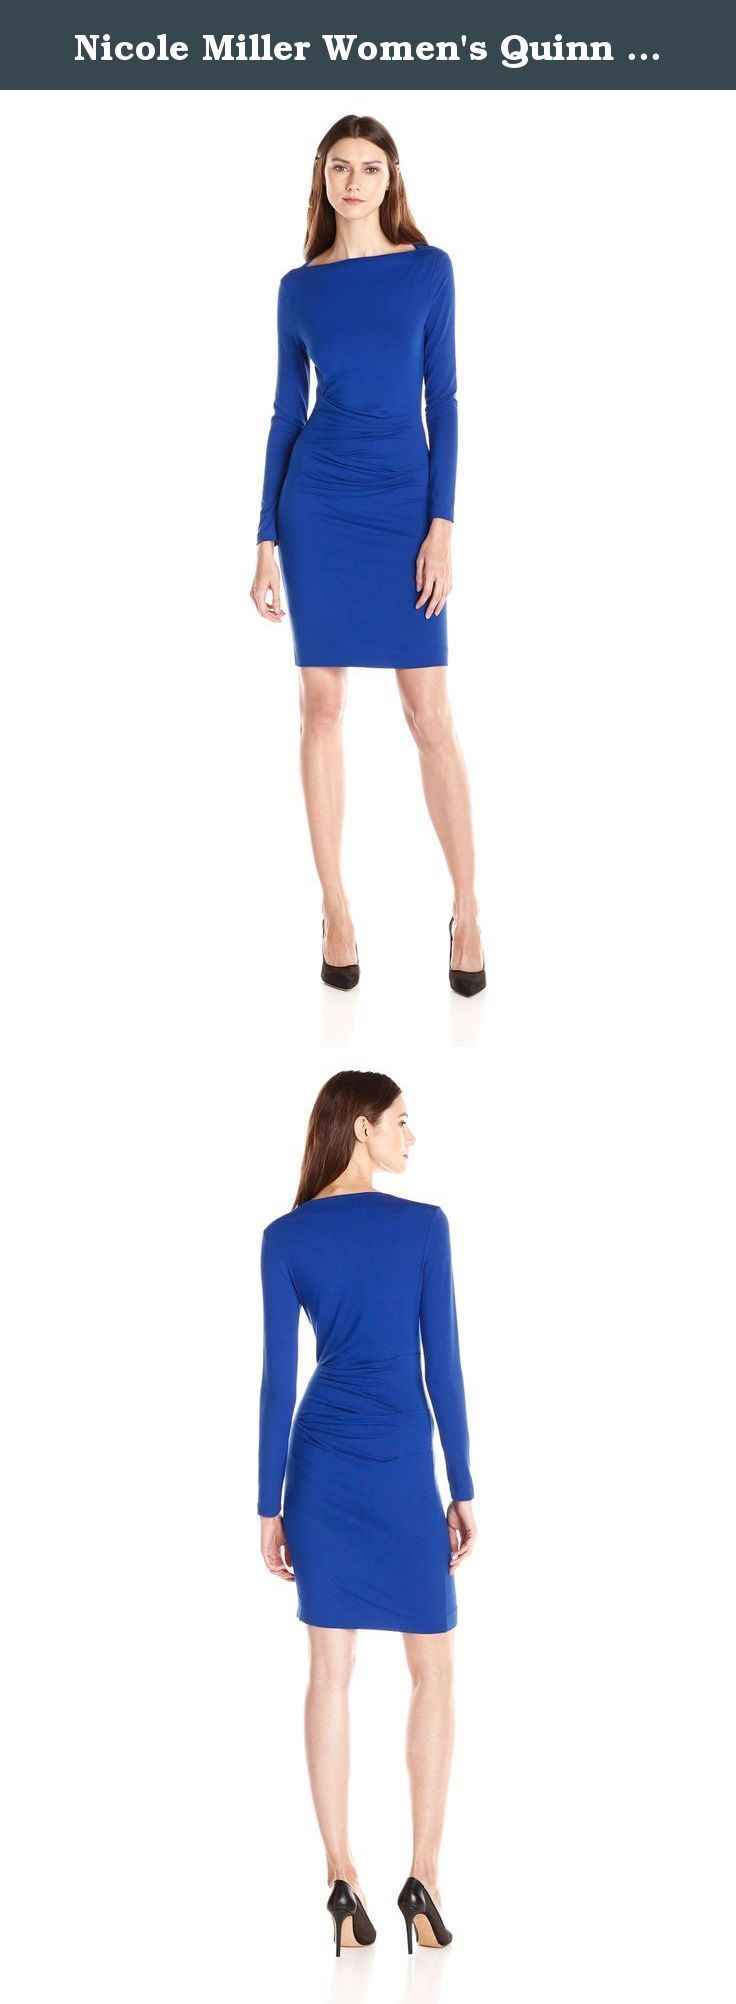 Nicole Miller Women's Quinn Solid Jersey Long Sleeve Tuck Dress, Cobalt, Petite. This dress features a boat neckline with middle ruching. The long sleeves makes this dress perfect for a chilly evening out.